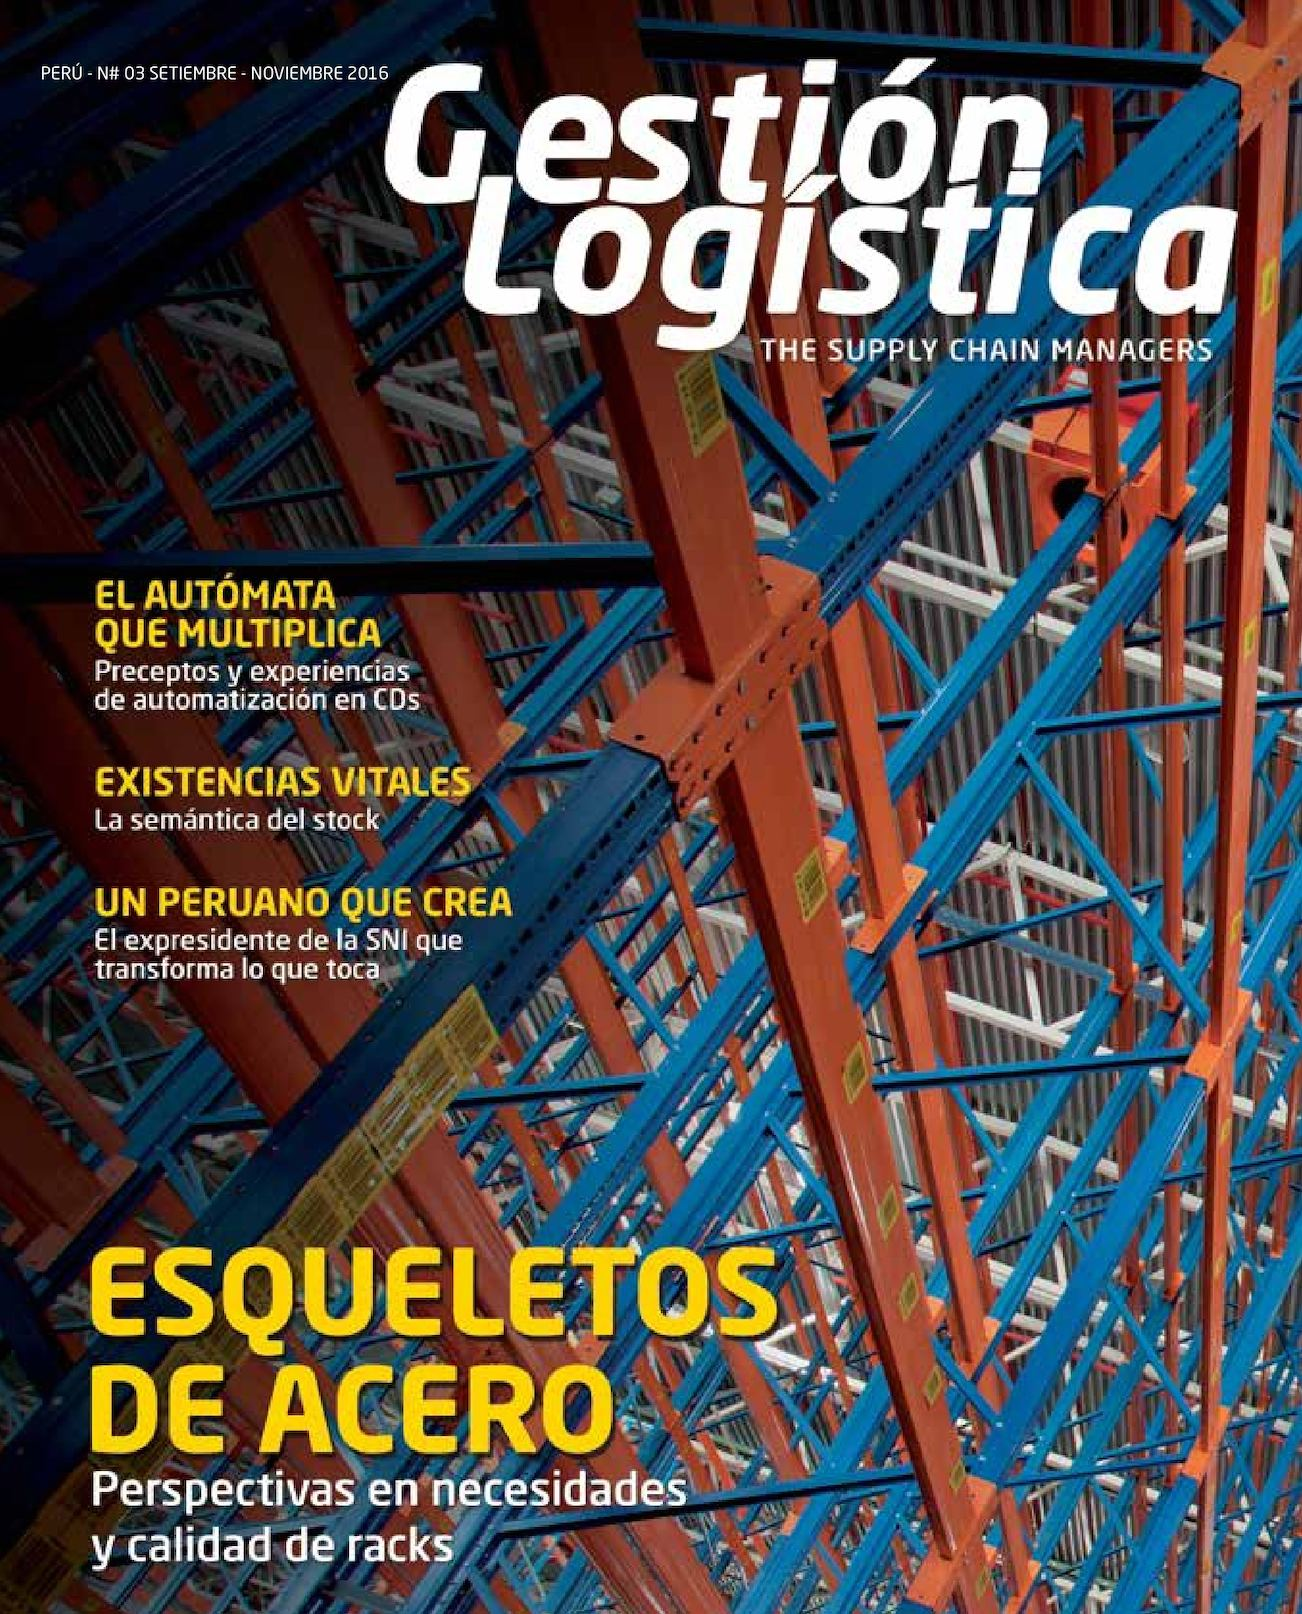 Calaméo - Gestion Logistica The Supply Chain Managers Ed 03 Set 2016